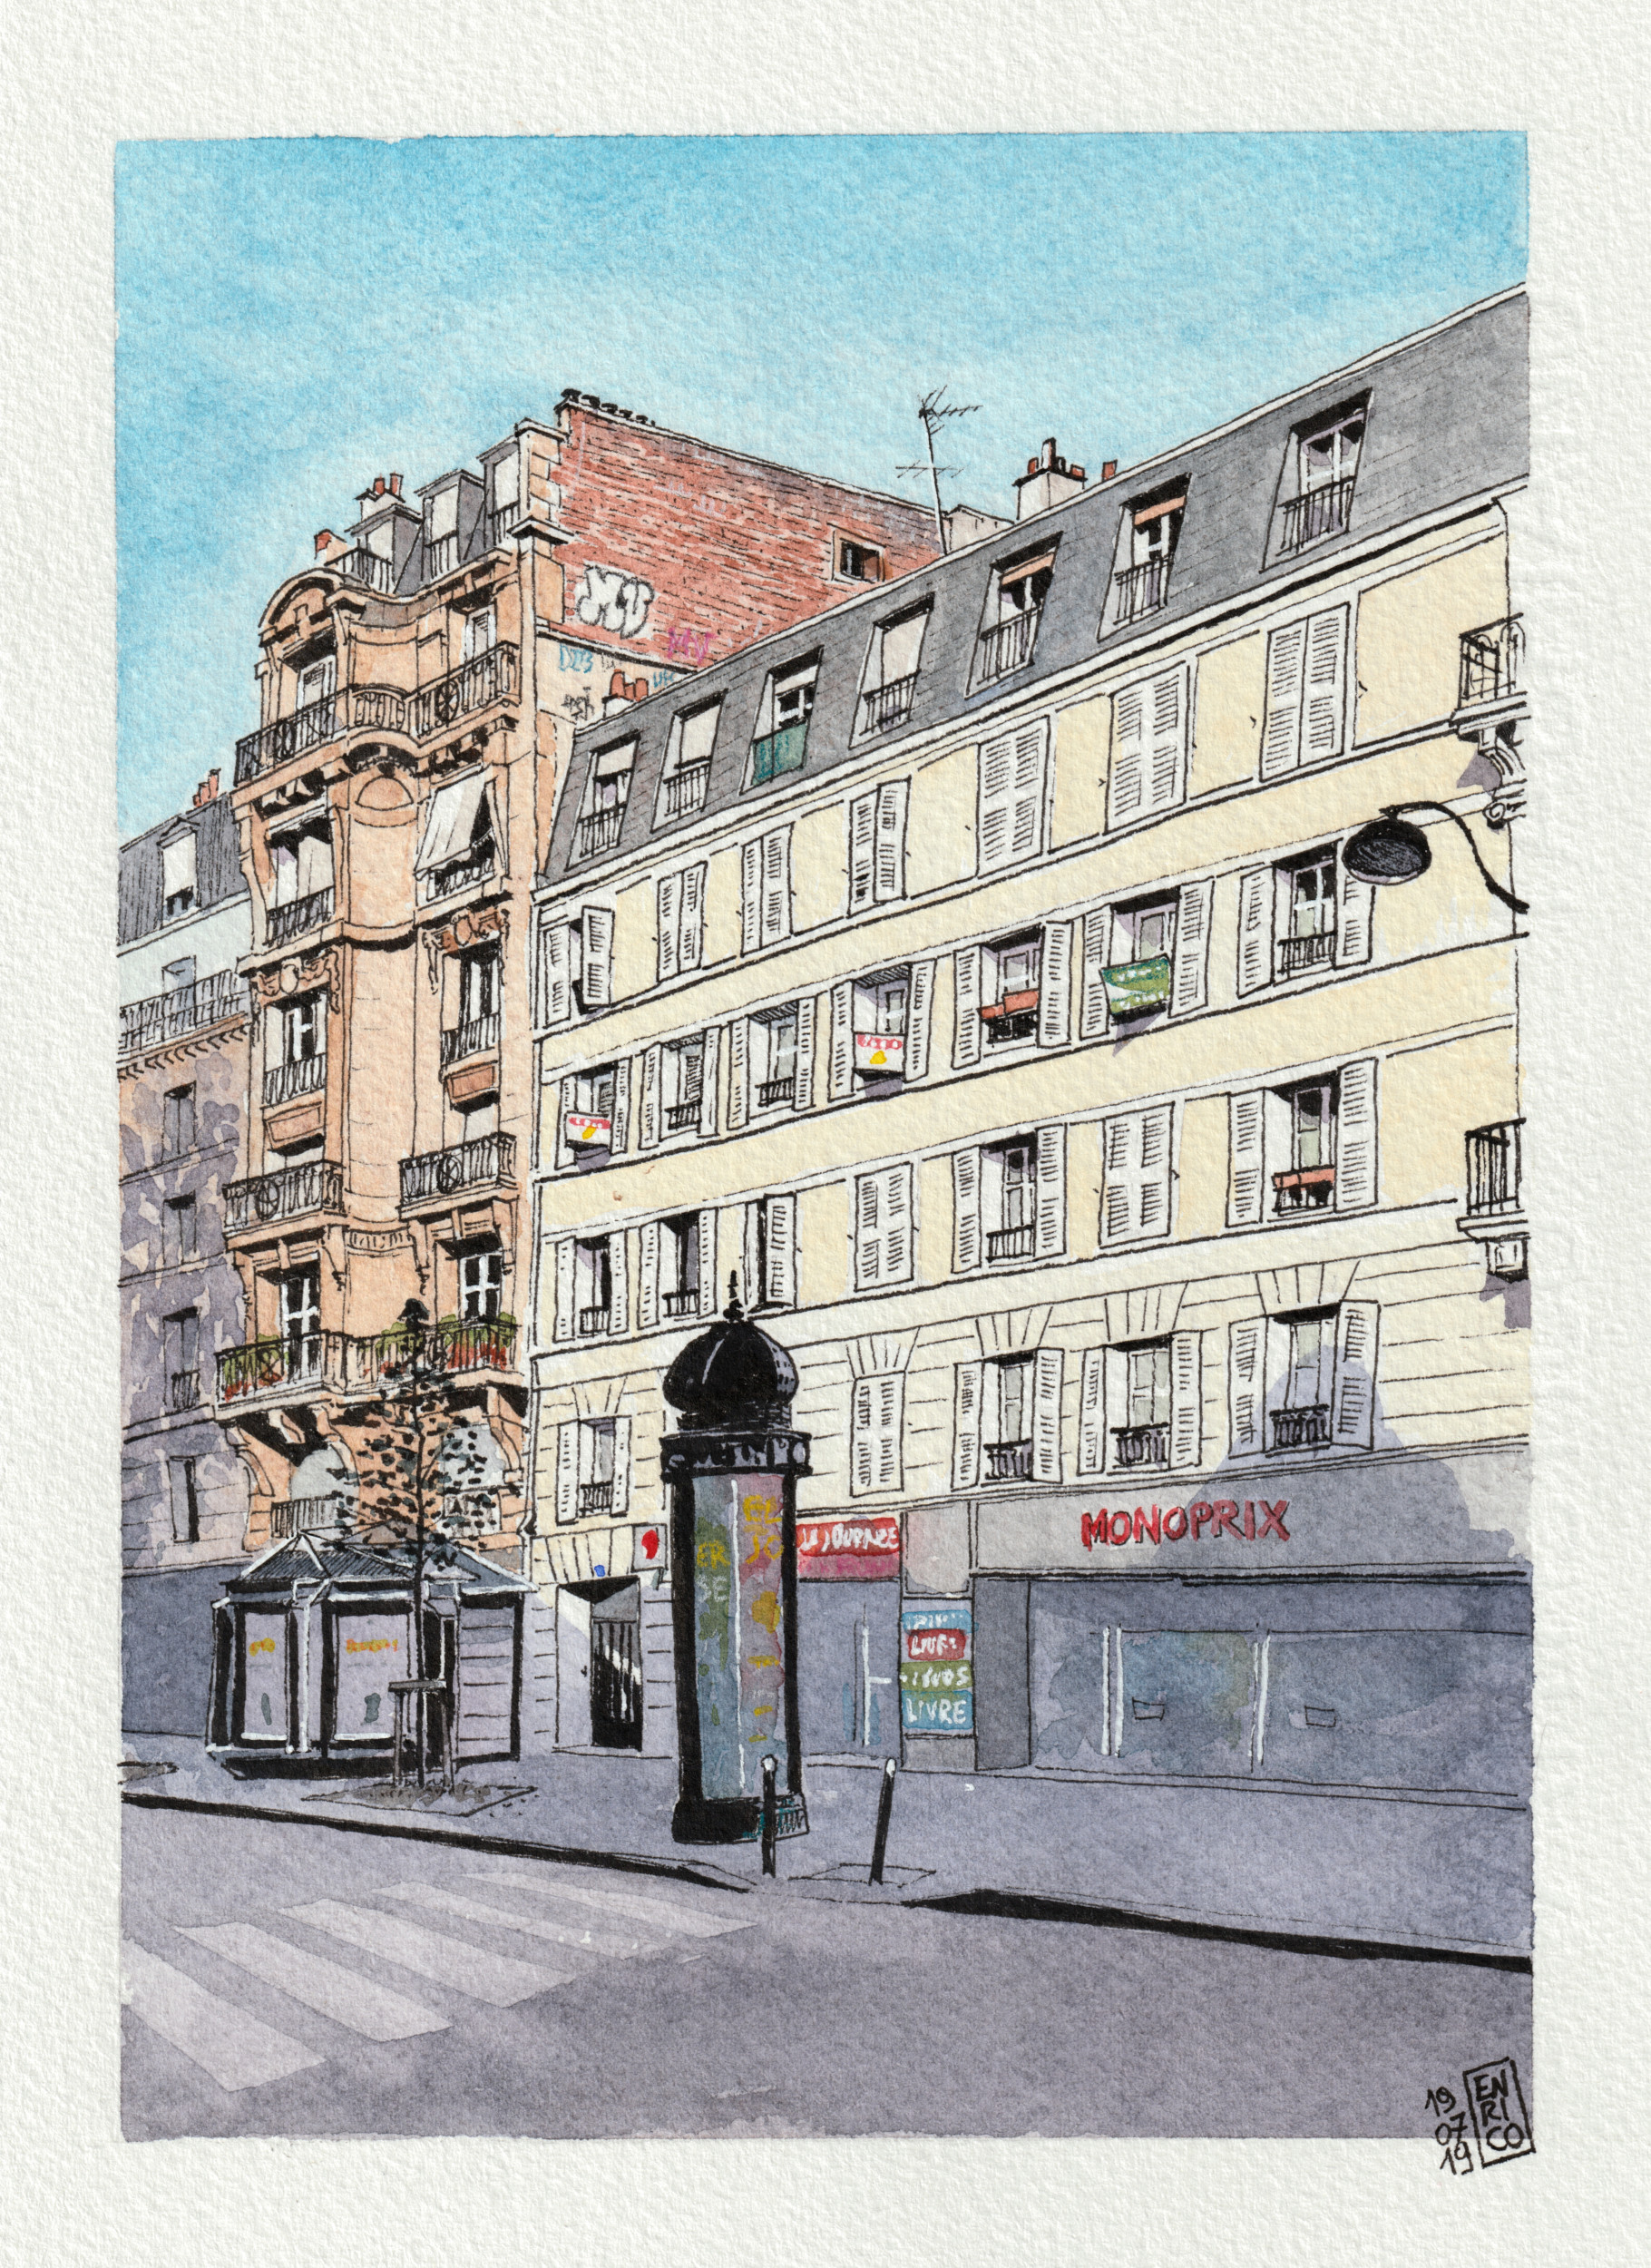 Friends of mine used to live in this building when they were in Paris. They knew I was about to visit Paris and they asked me to go there and sketch it.